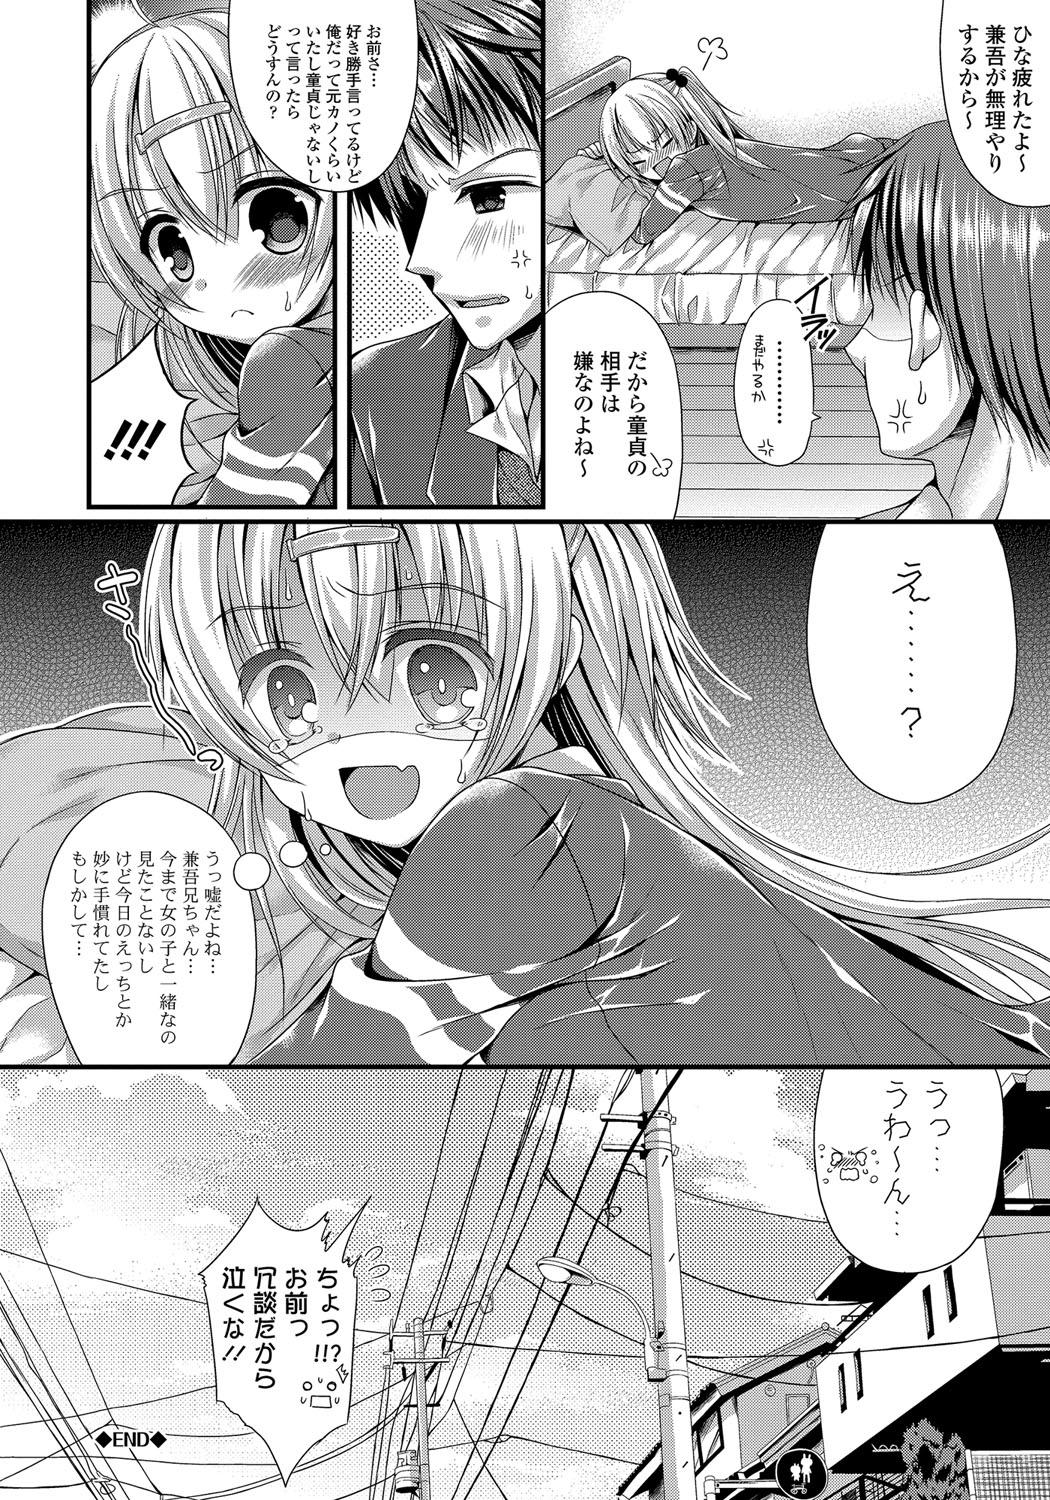 Kanojo to Hajimeteno - For the First Time with Her 122